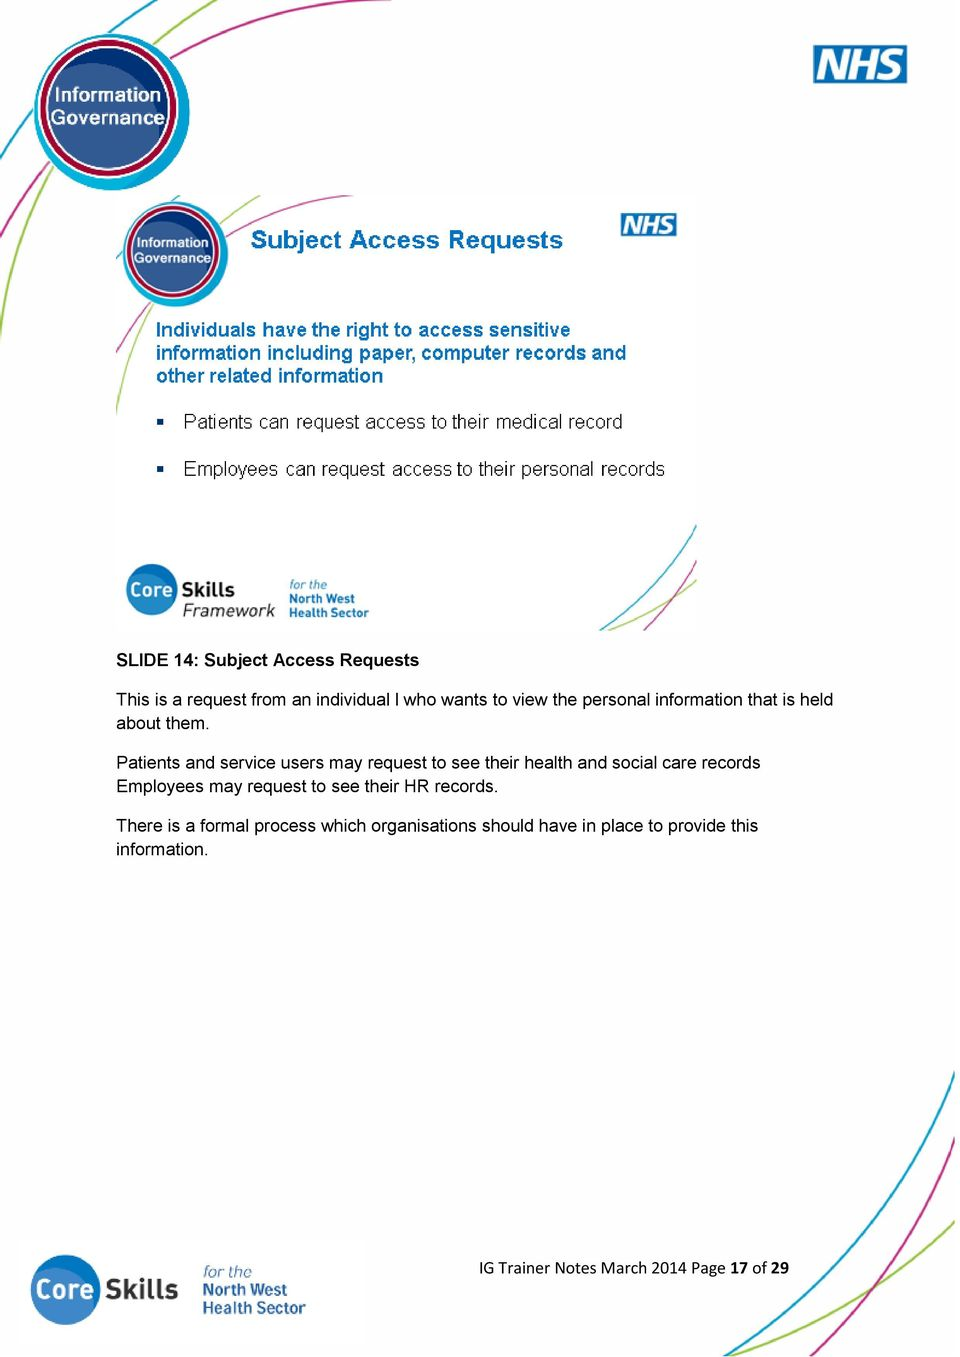 Patients and service users may request to see their health and social care records Employees may